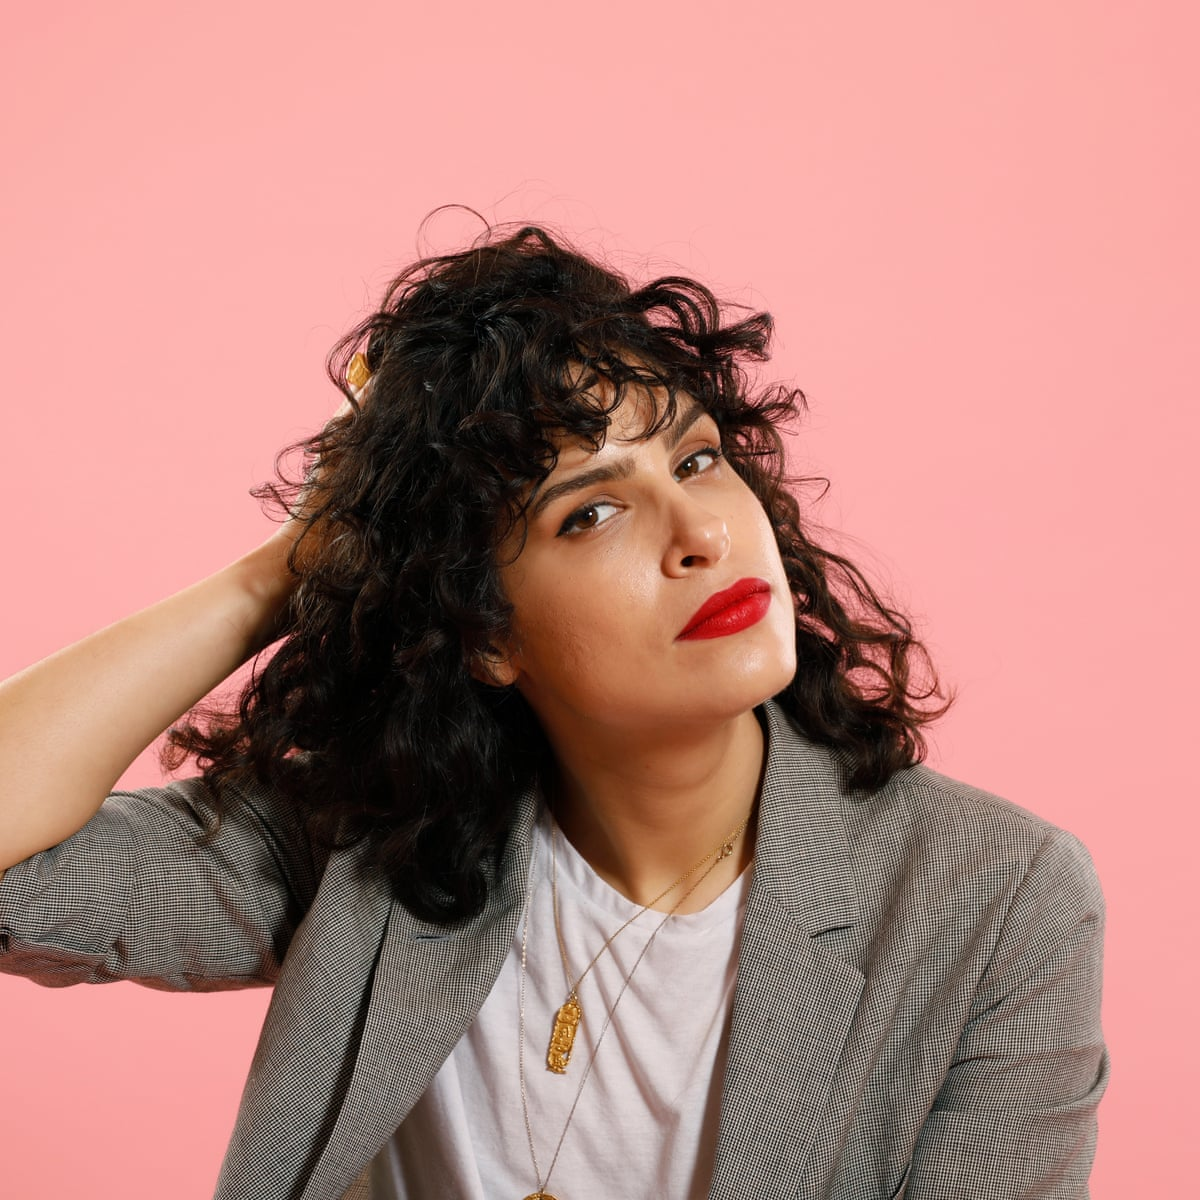 Desiree Akhavan The Only Mainstream Queer Female Stories Have Been Directed By Men It Disgusts Me Movies The Guardian